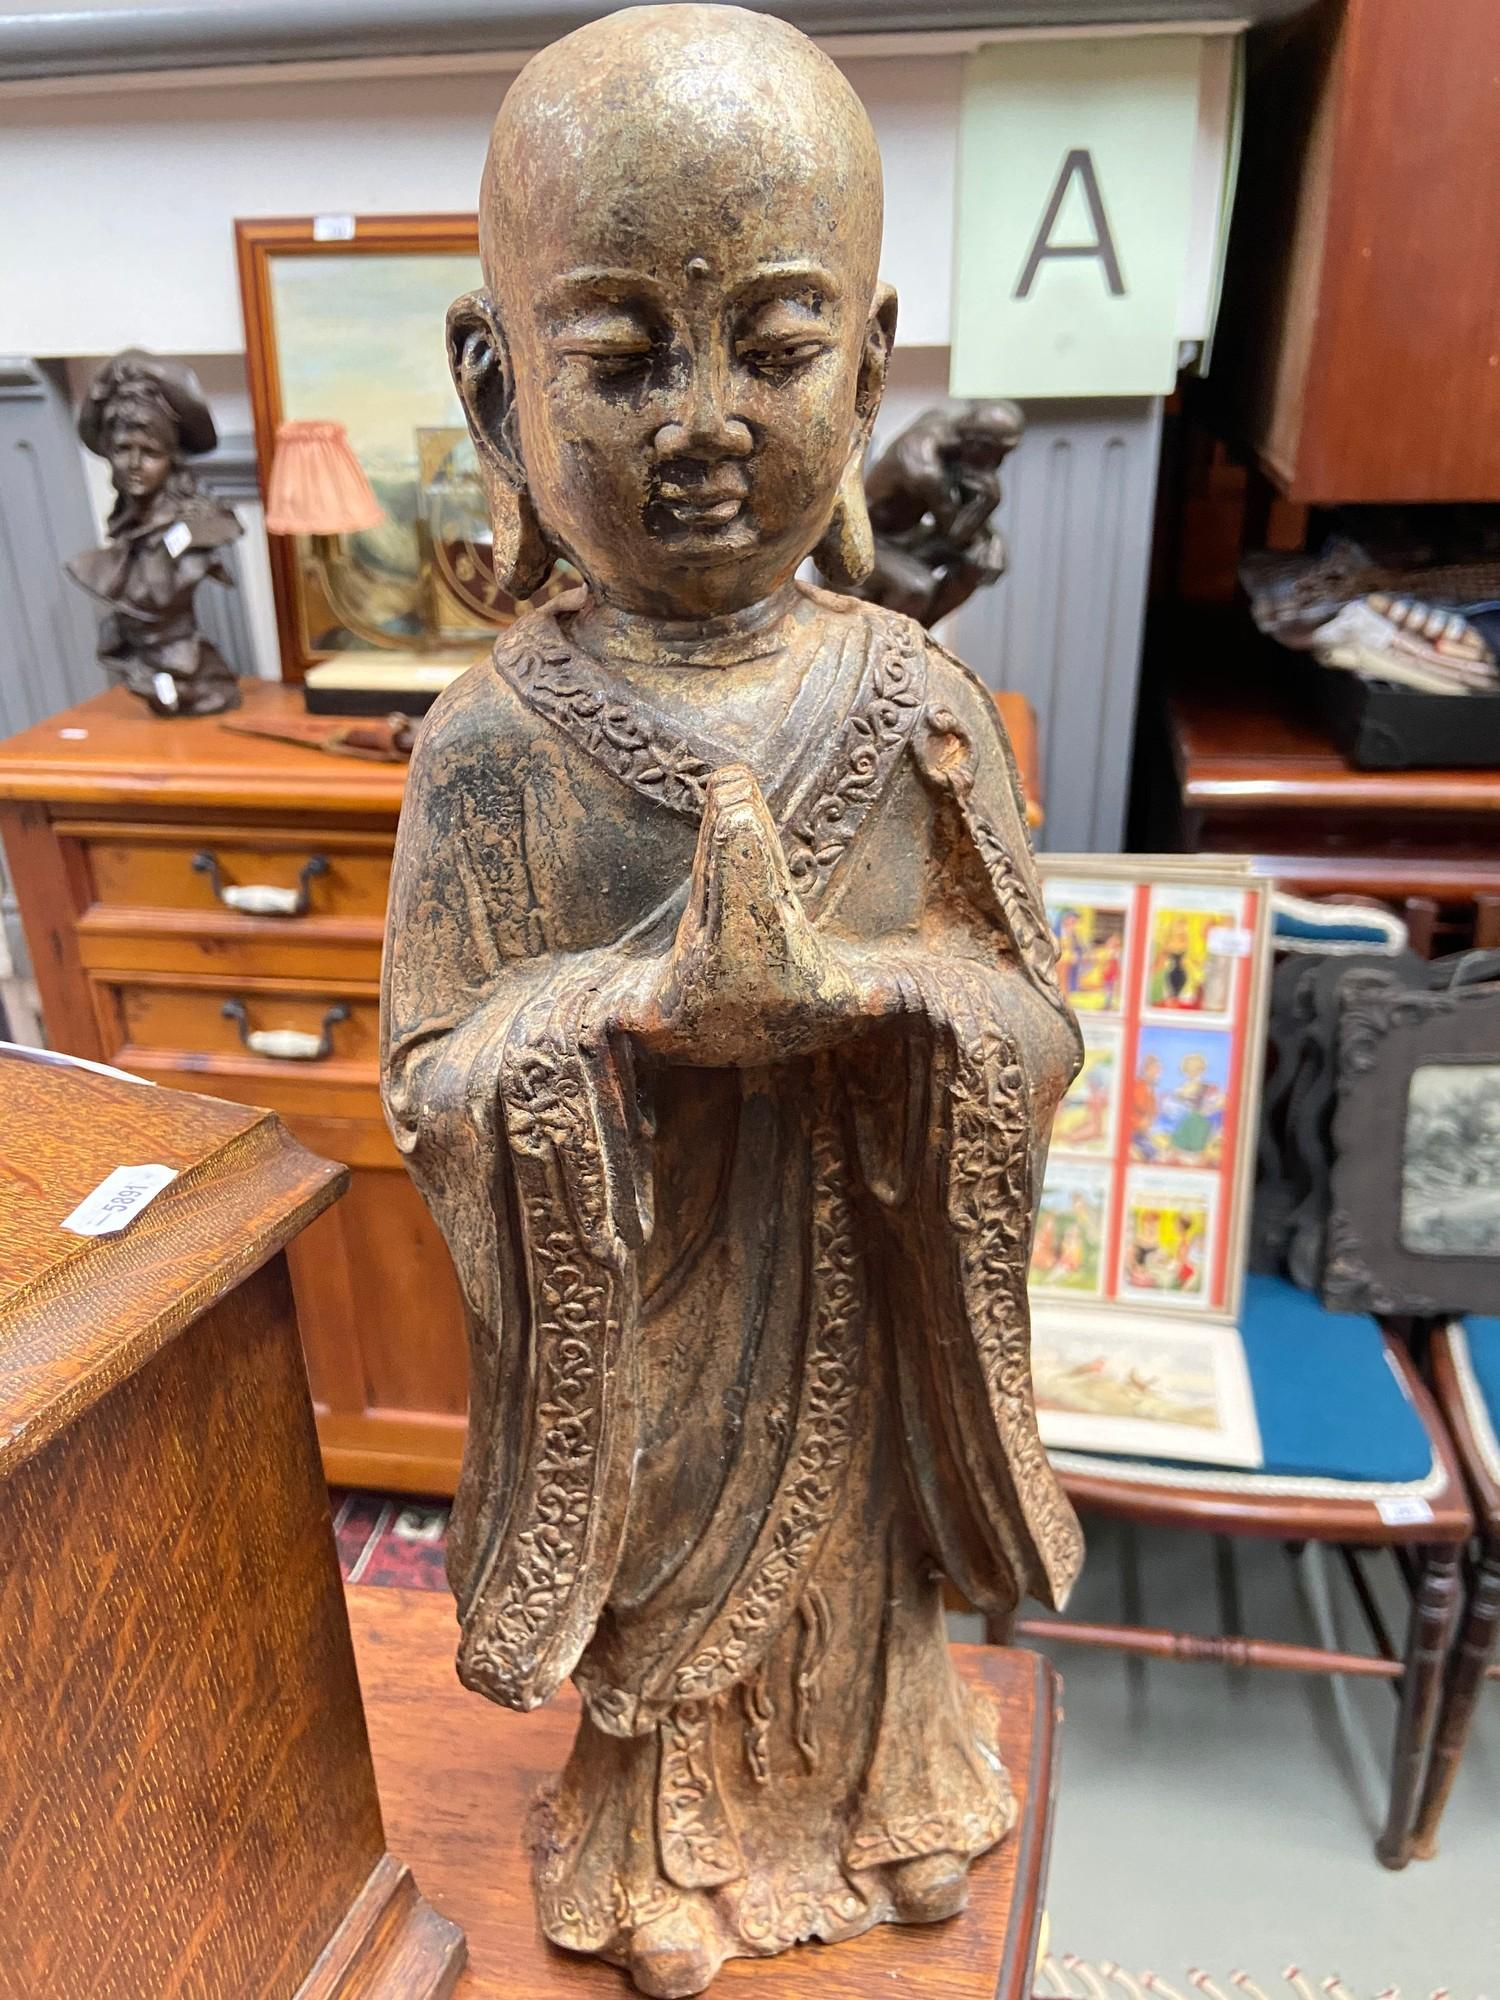 Lot 19 - A 19th century Chinese cast iron Monk figure.Showing signs of original gold colouring coming